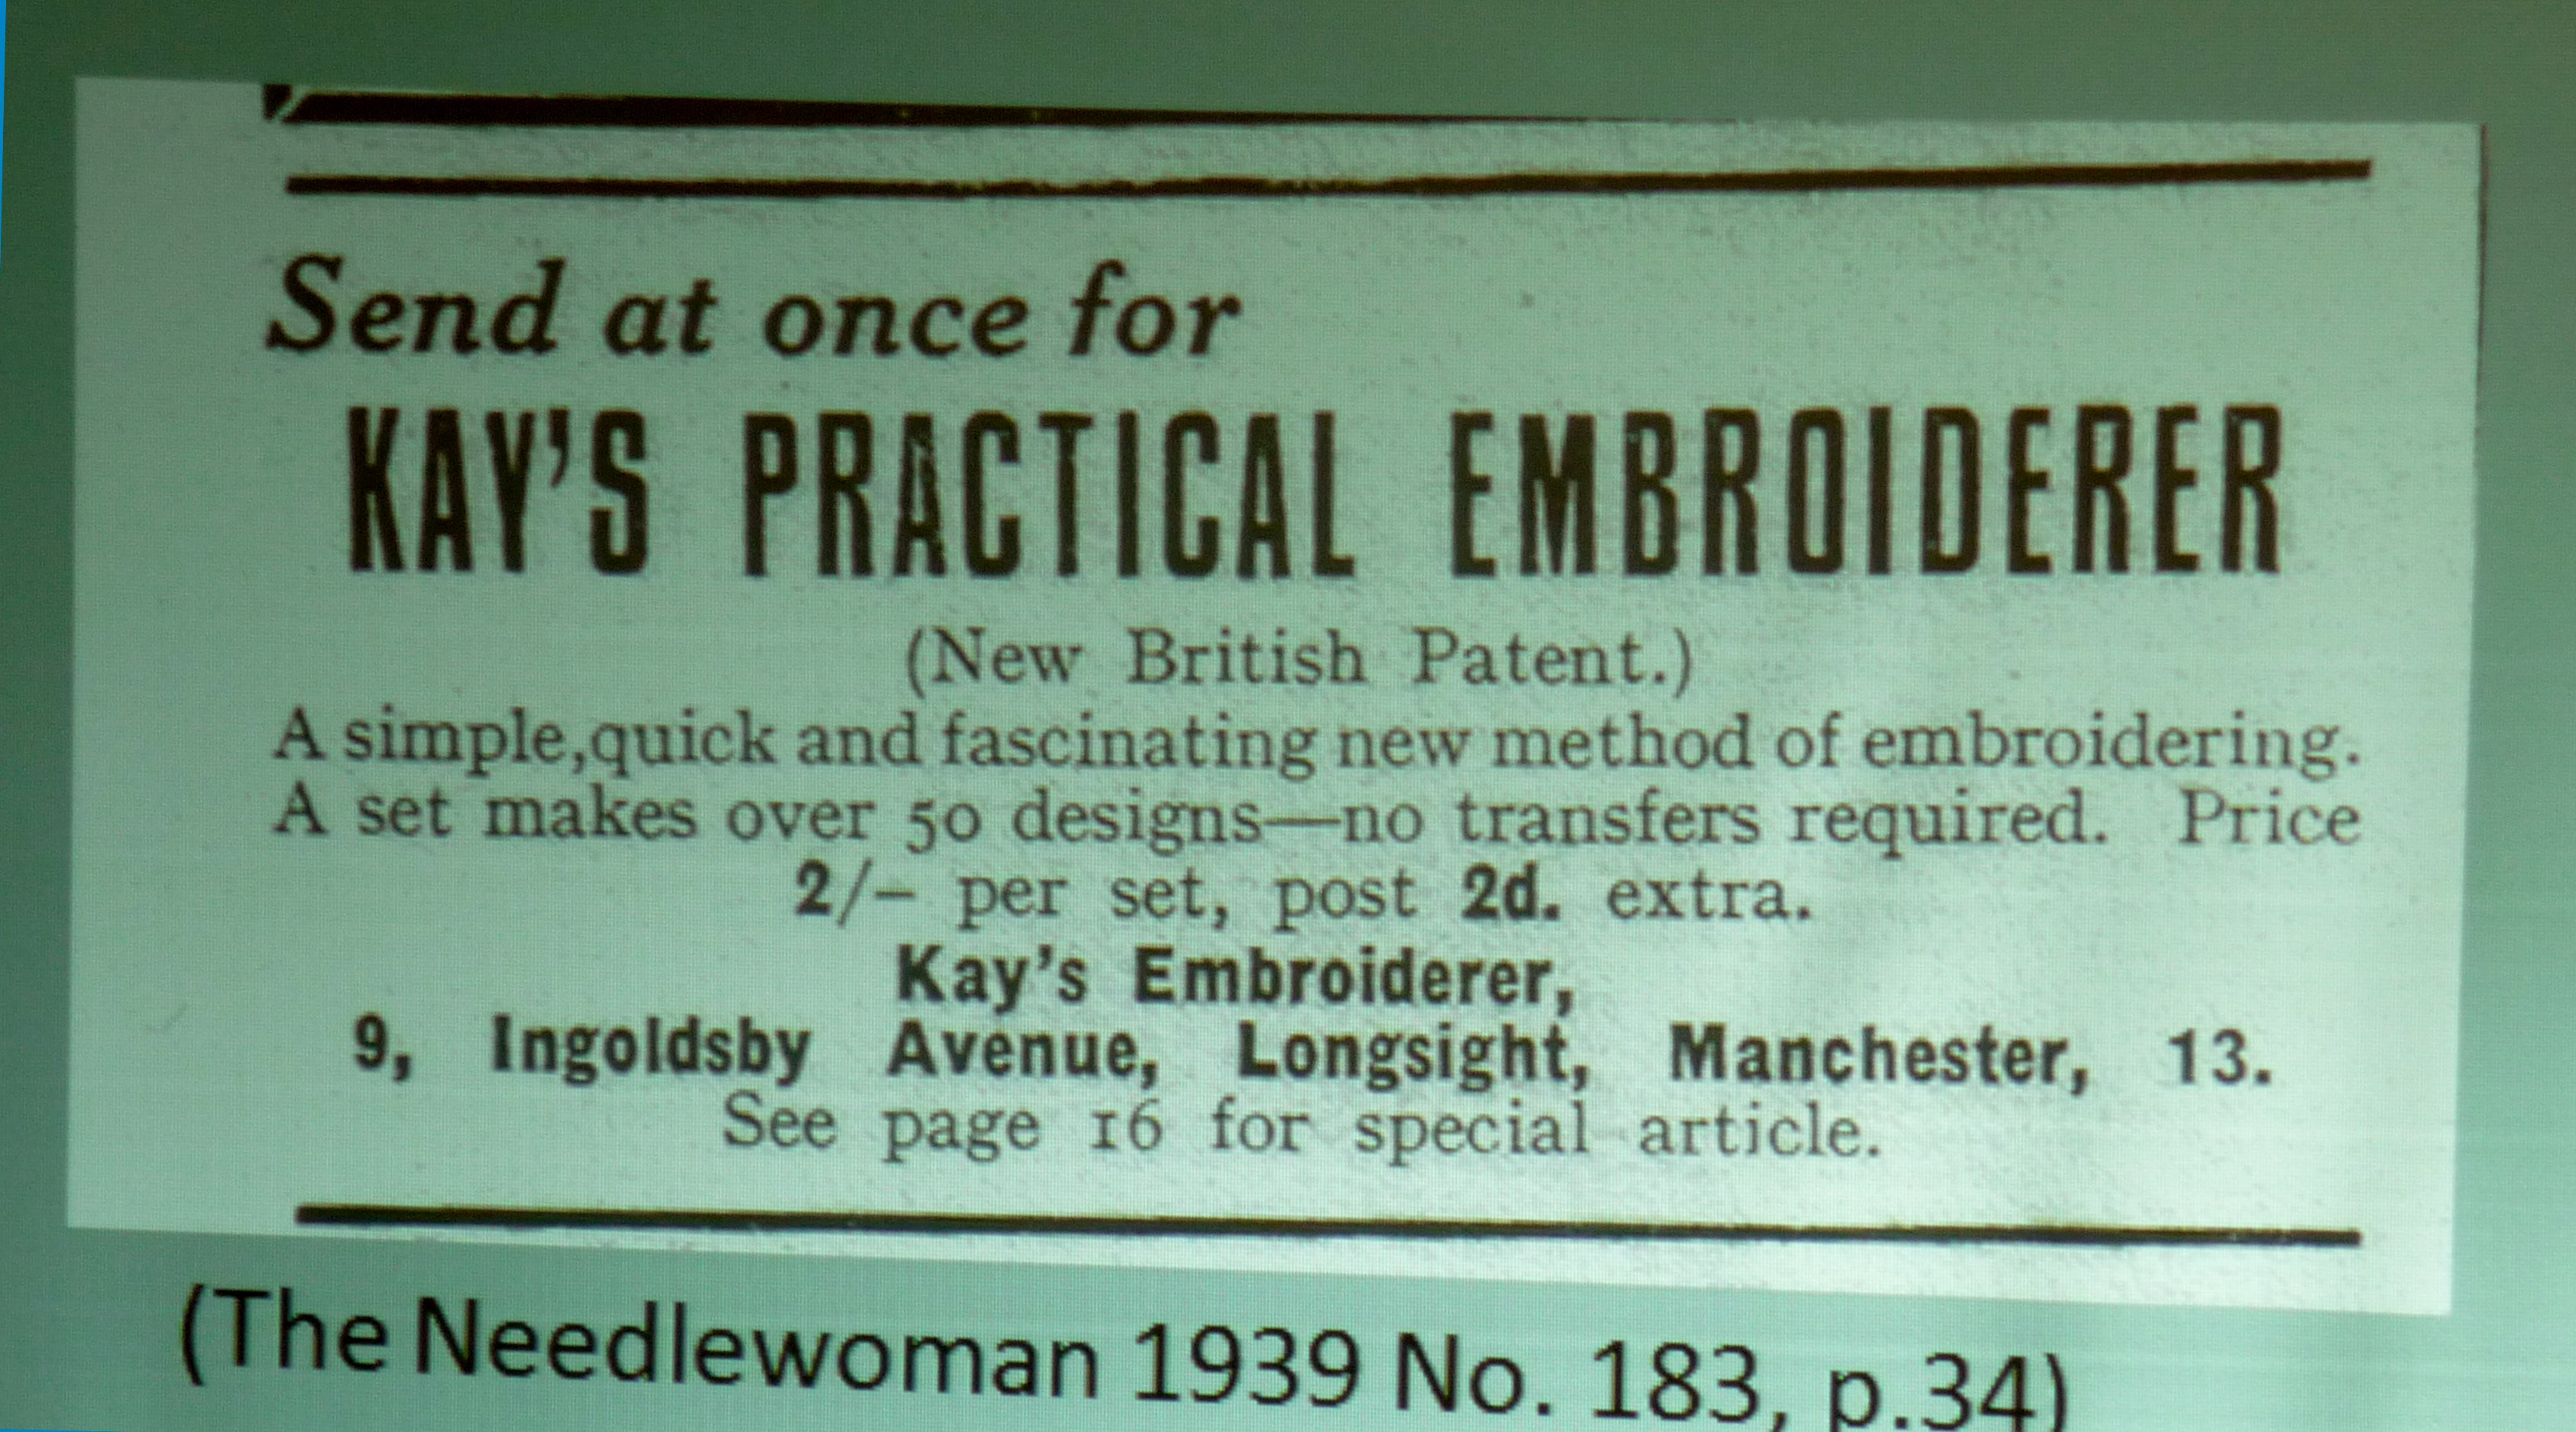 slide by Alice Colson showing an advertisement for Kay's Practical Embroiderer